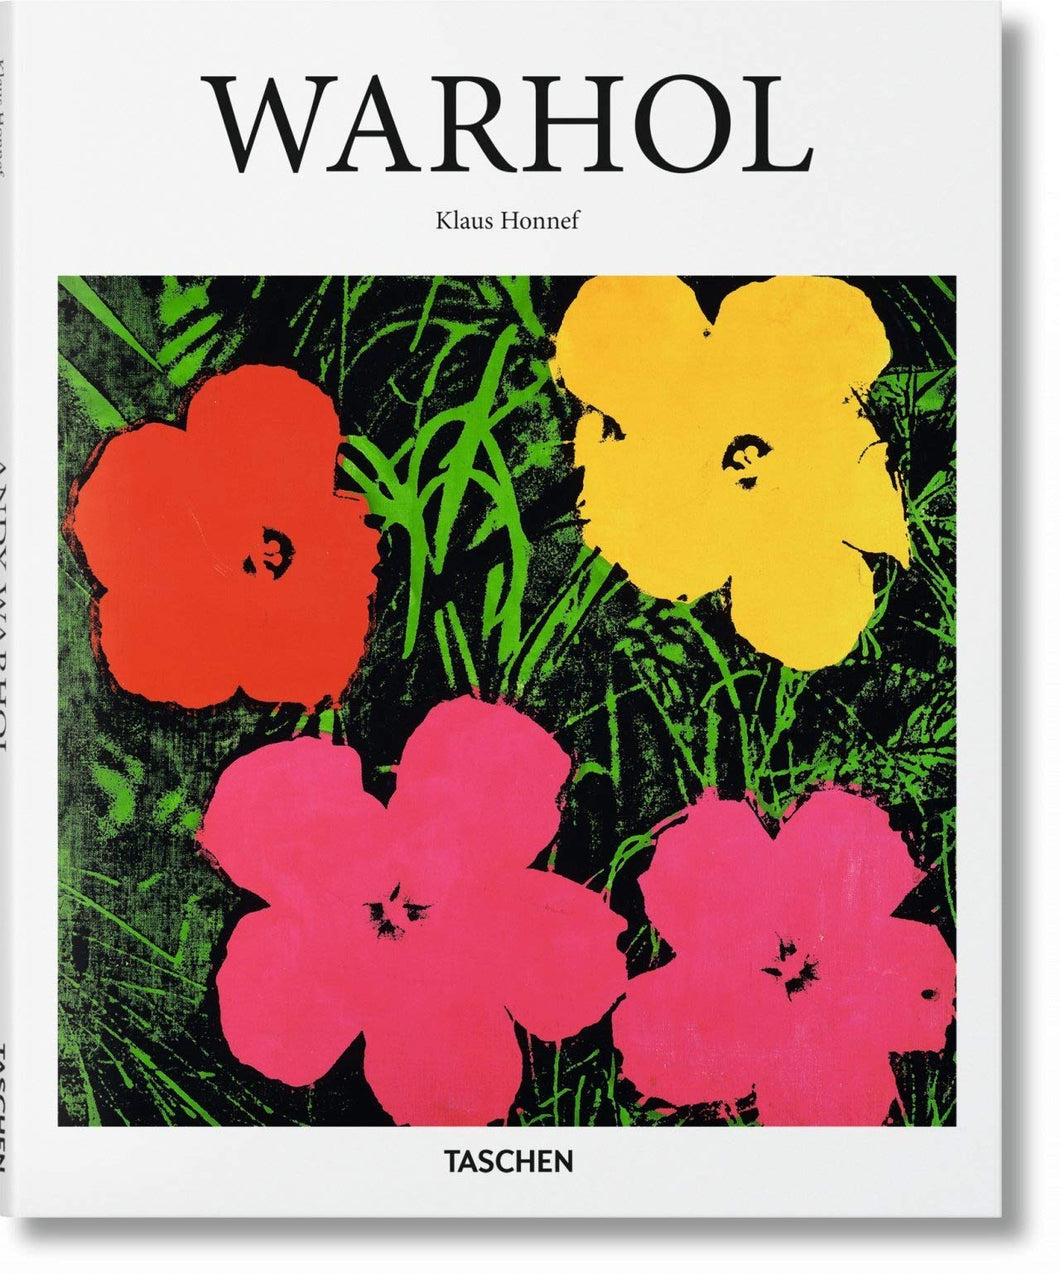 Warhol (Basic Art Series 2.0) by Klaus Honnef (Hardcover)